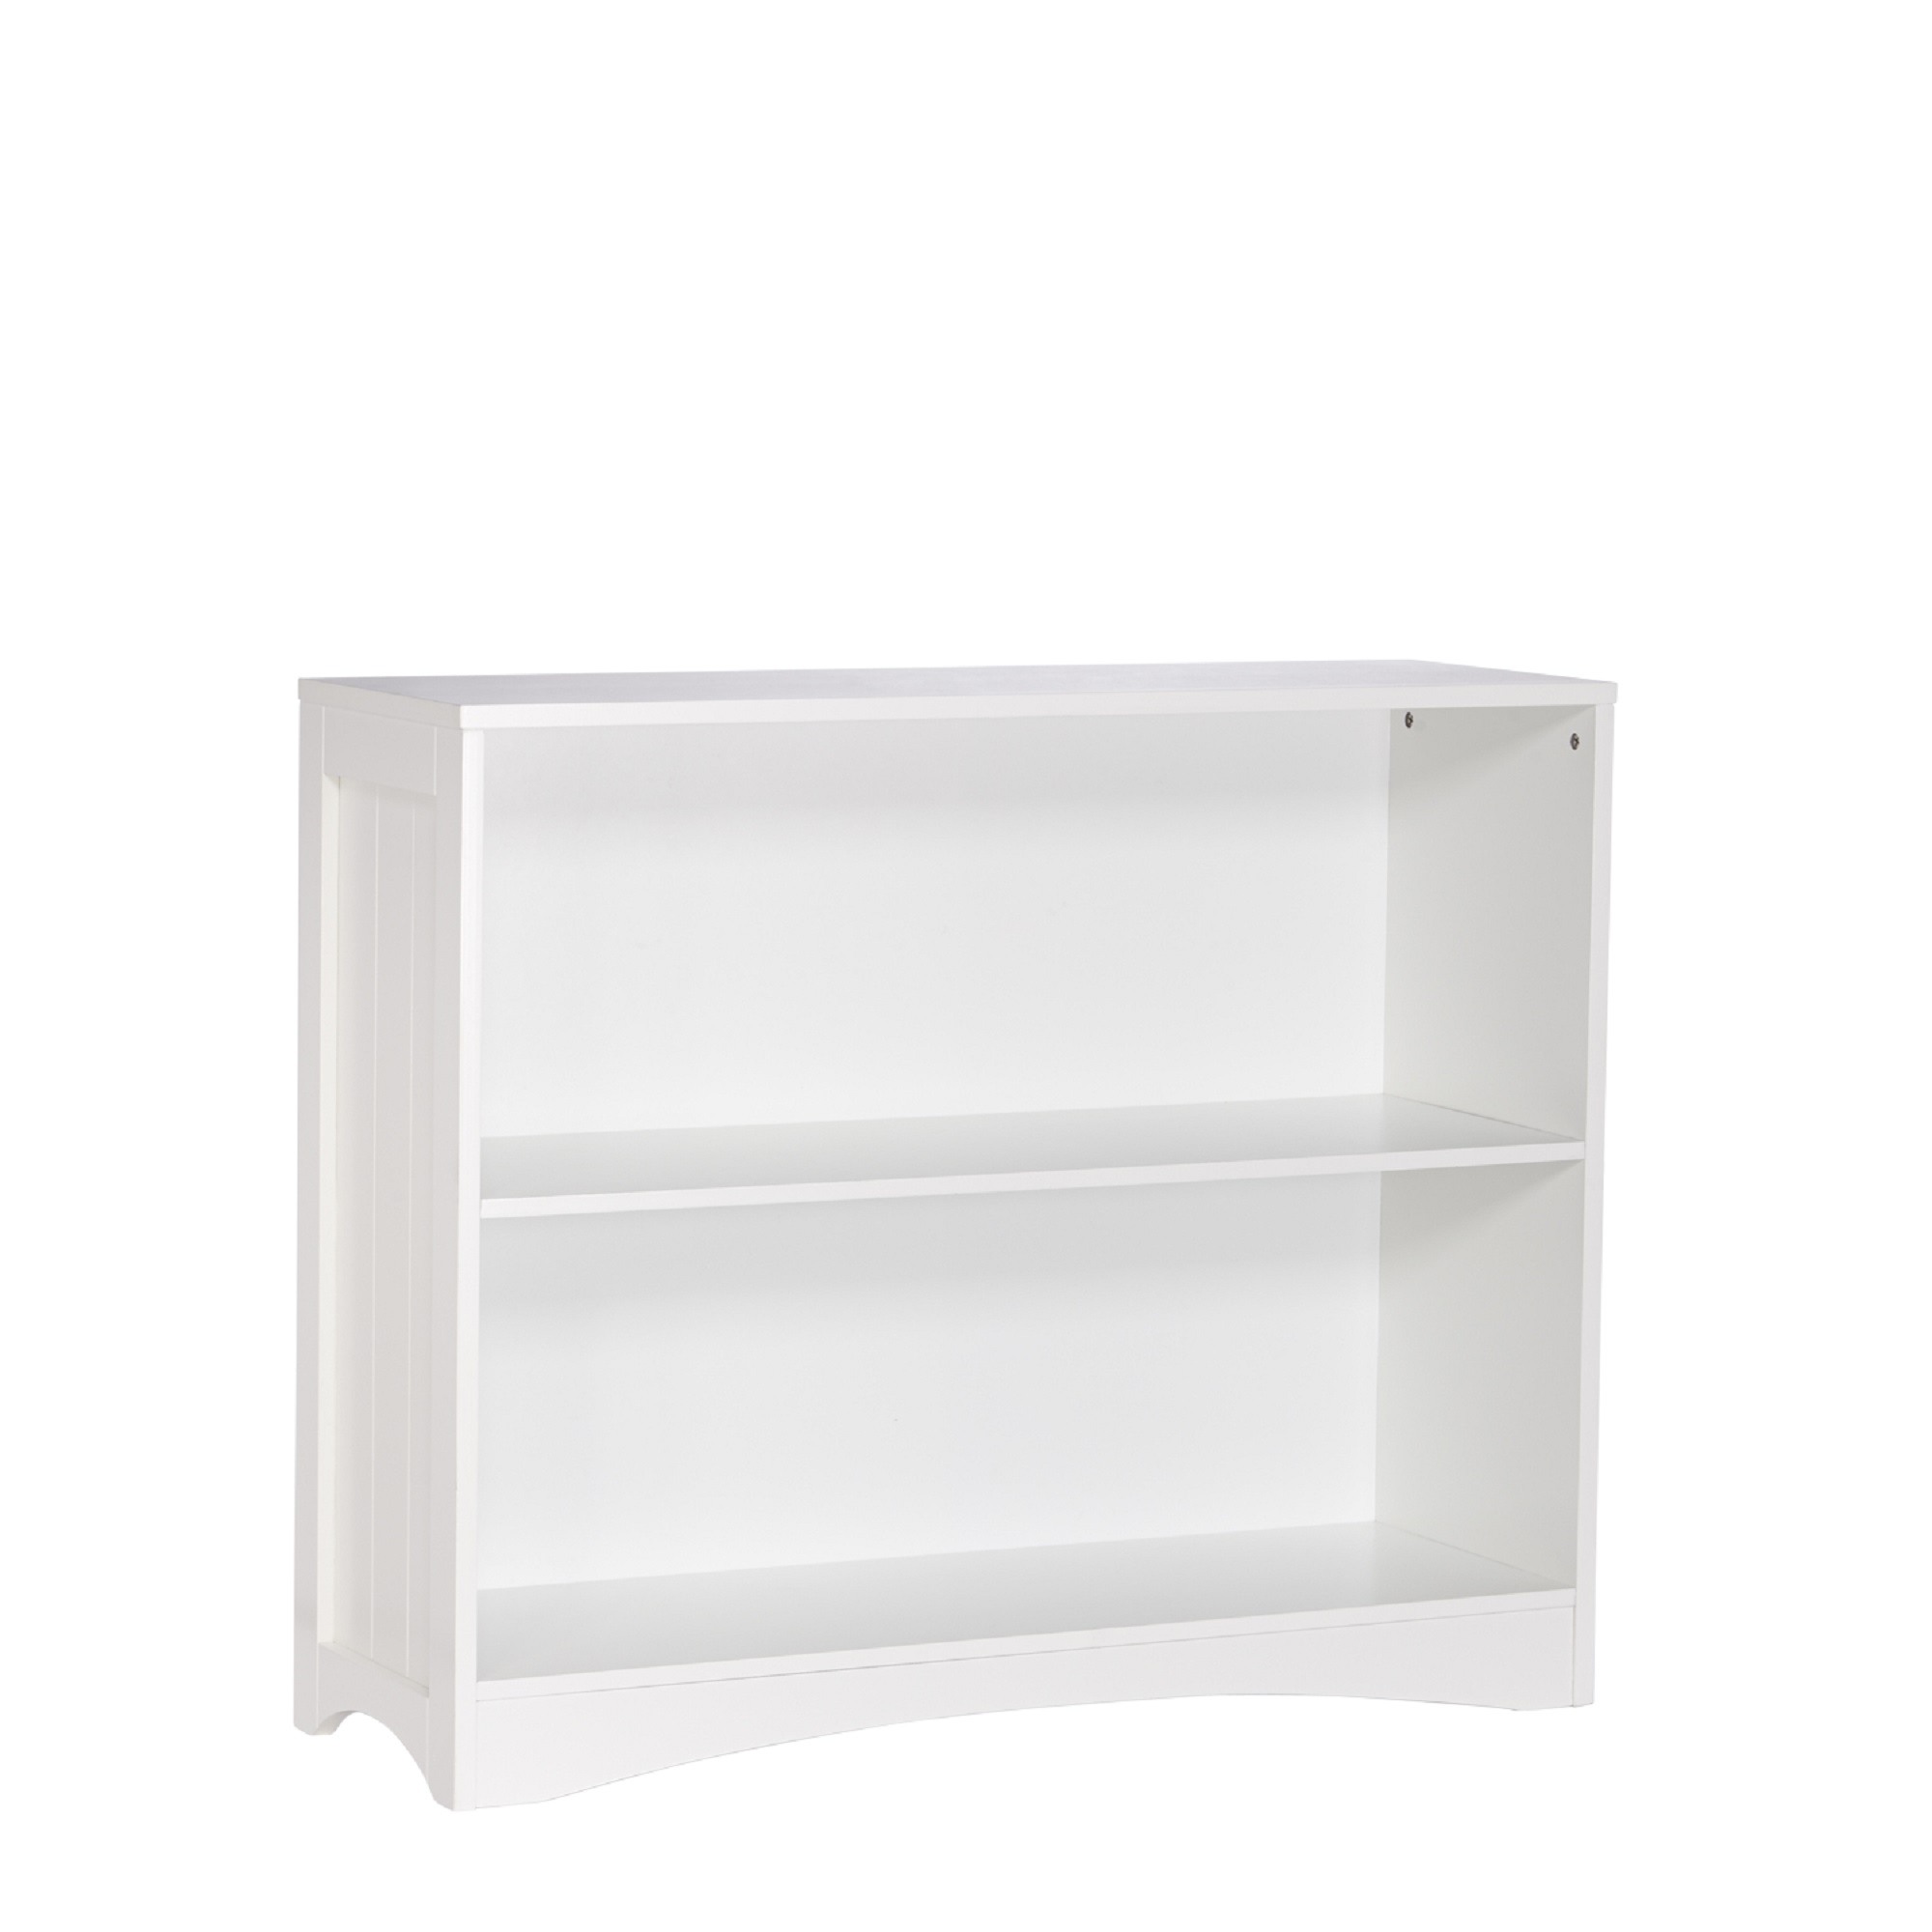 wooden home low me doors near bookshelf wood horizontal deep bookcase depot tall furniture white long with bookcases